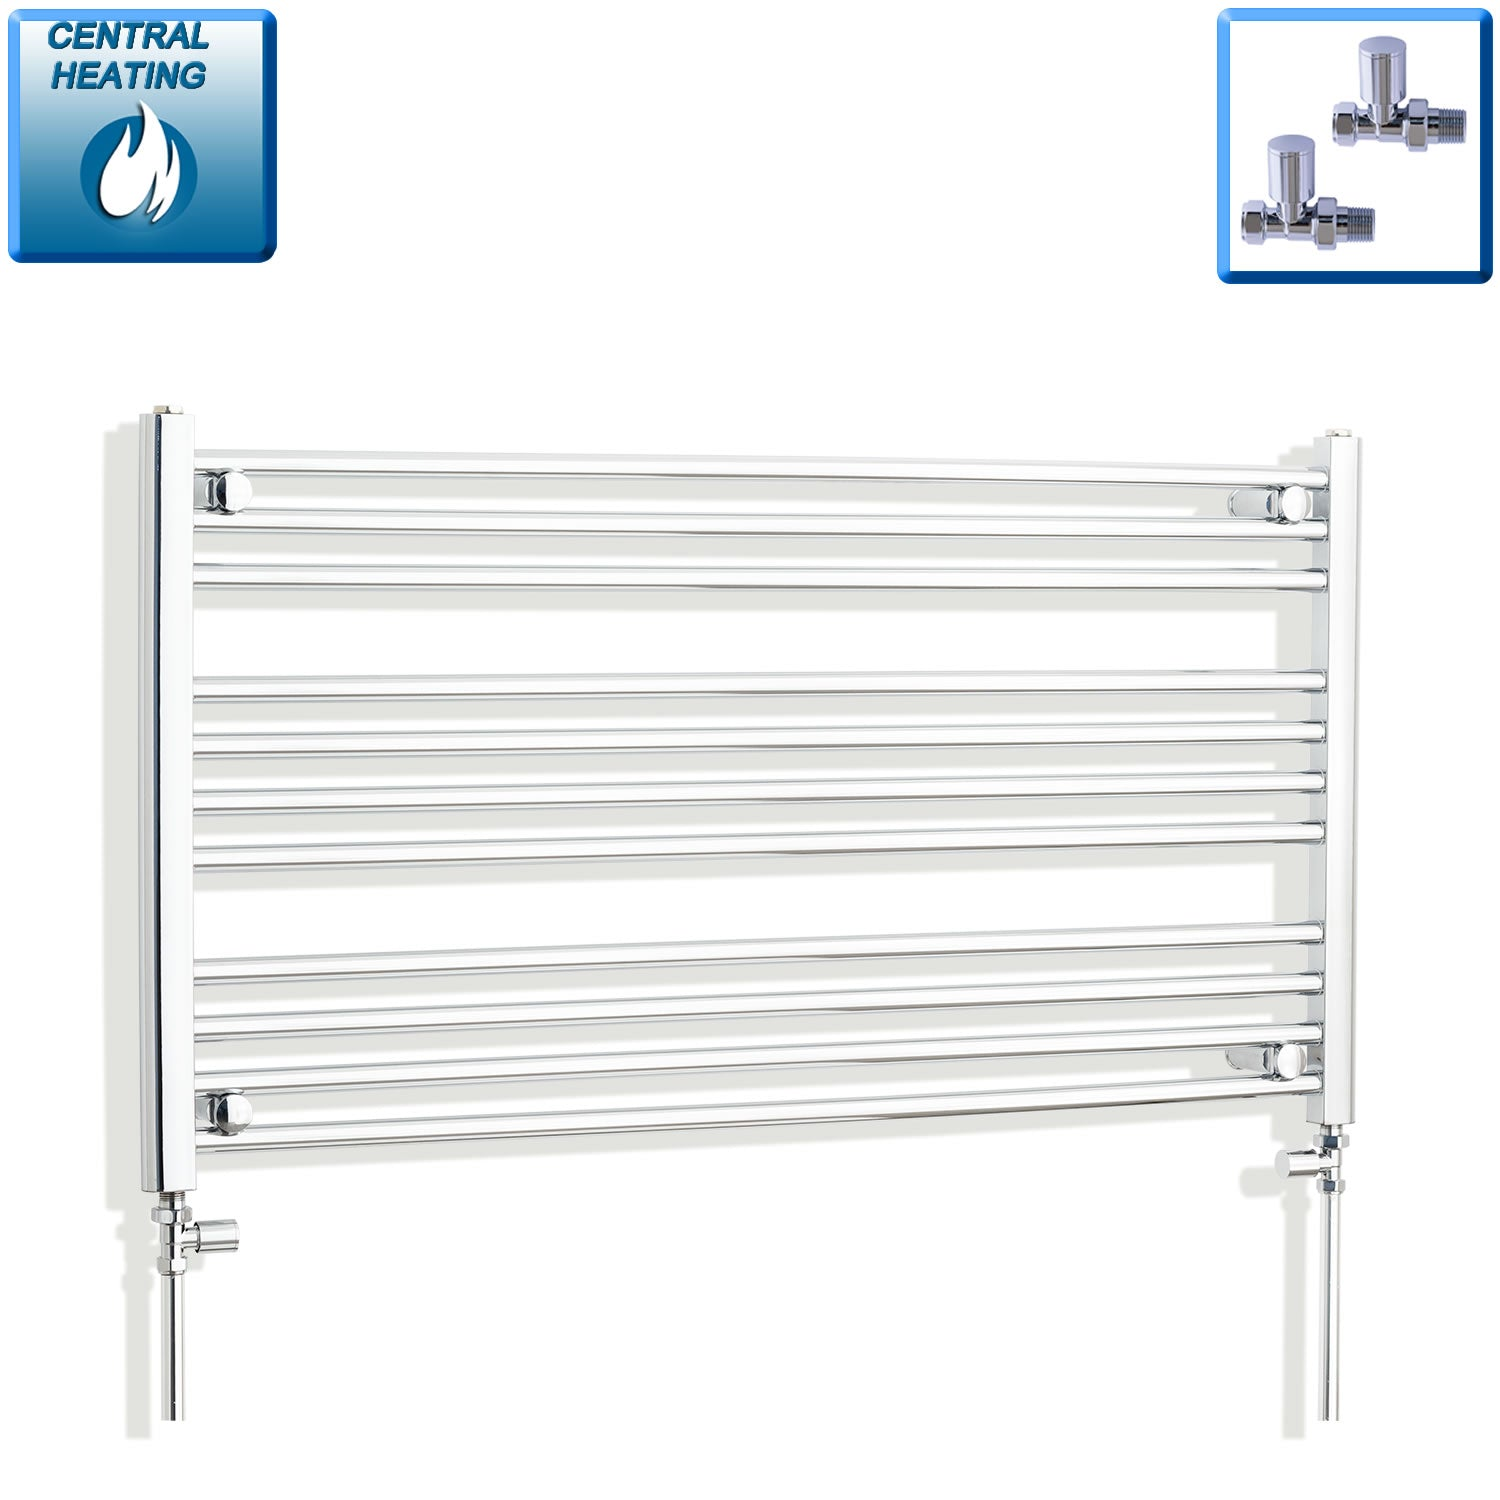 950mm Wide 600mm High Chrome Towel Rail Radiator With Straight Valve